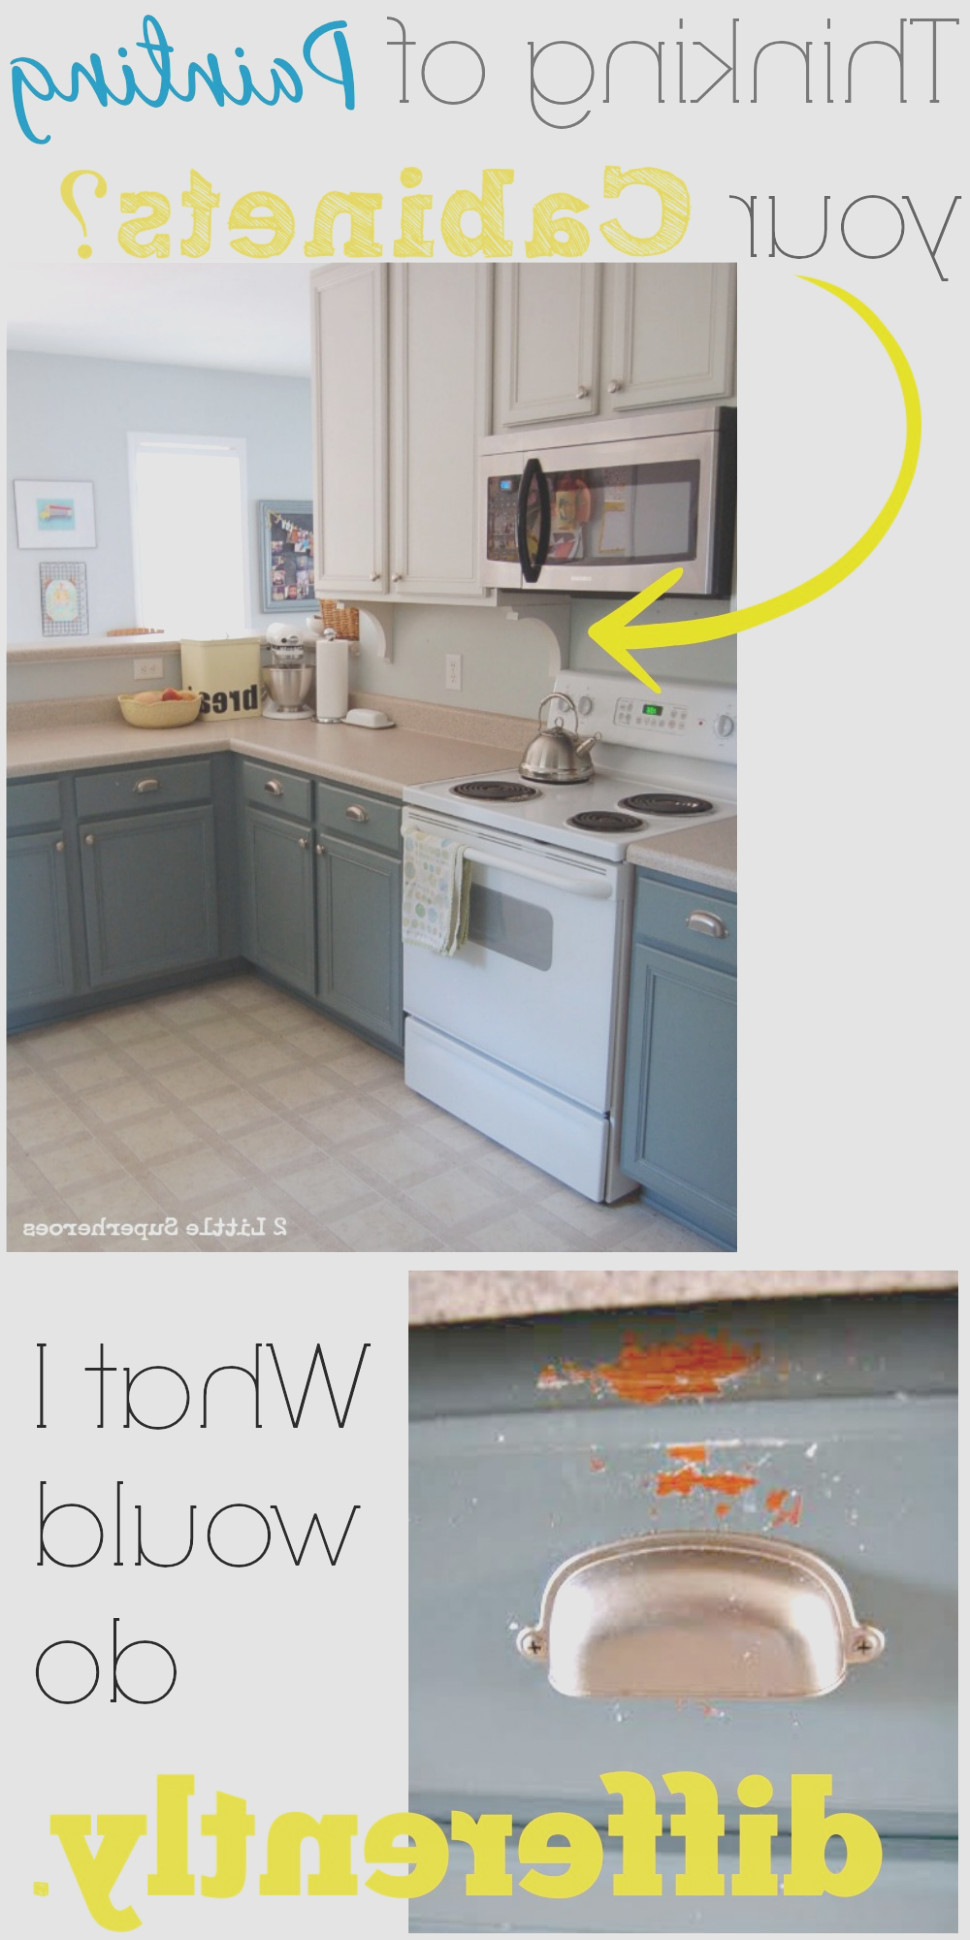 Protective Coating for Painted Kitchen Cabinets